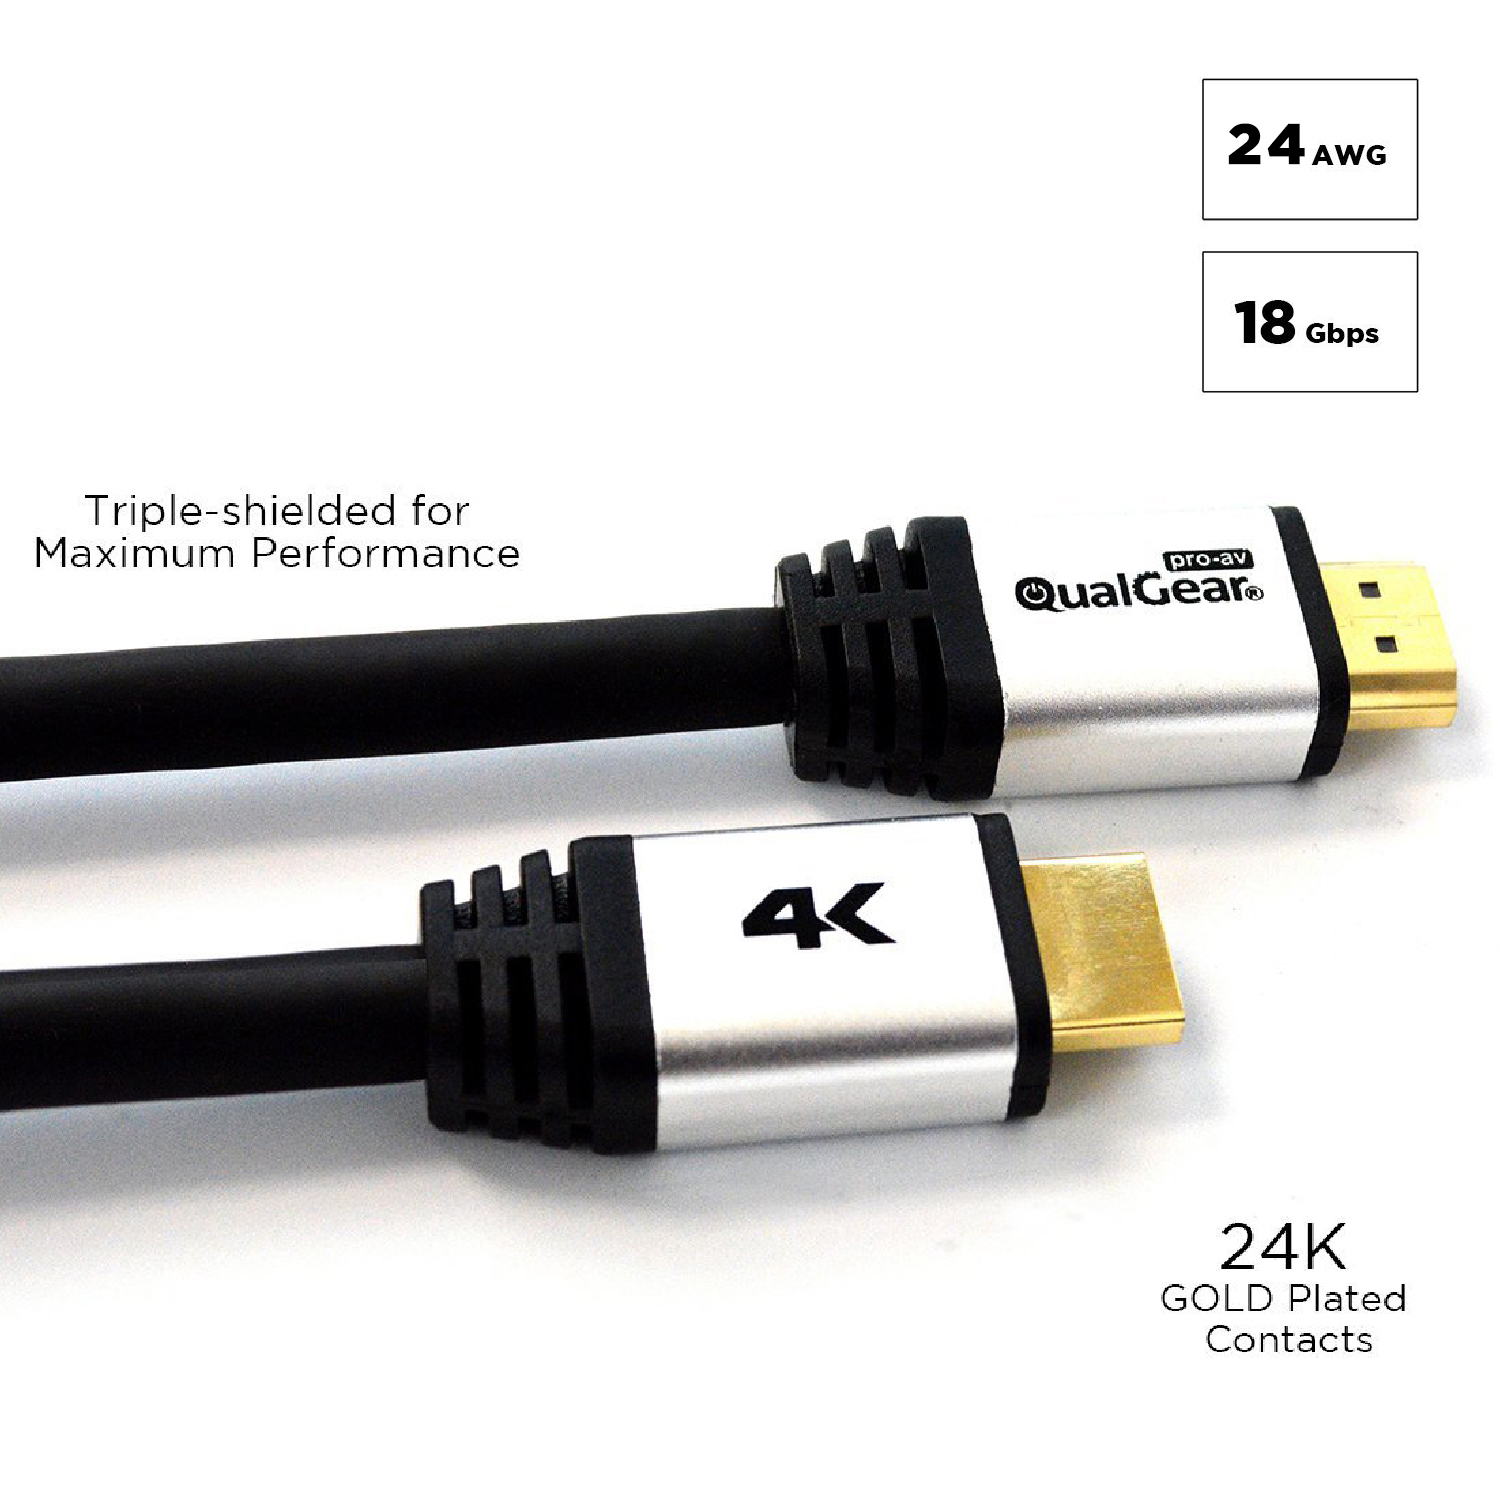 Qualgear 50 Feet High-Speed Long HDMI 2.0 Cable with 24K Gold Plated Contacts, Supports 4K Ultra HD, 3D, 18 Gbps, Audio Return Channel,CL3 Rated for In-Wall Use (QG-CBL-HD20-50FT)